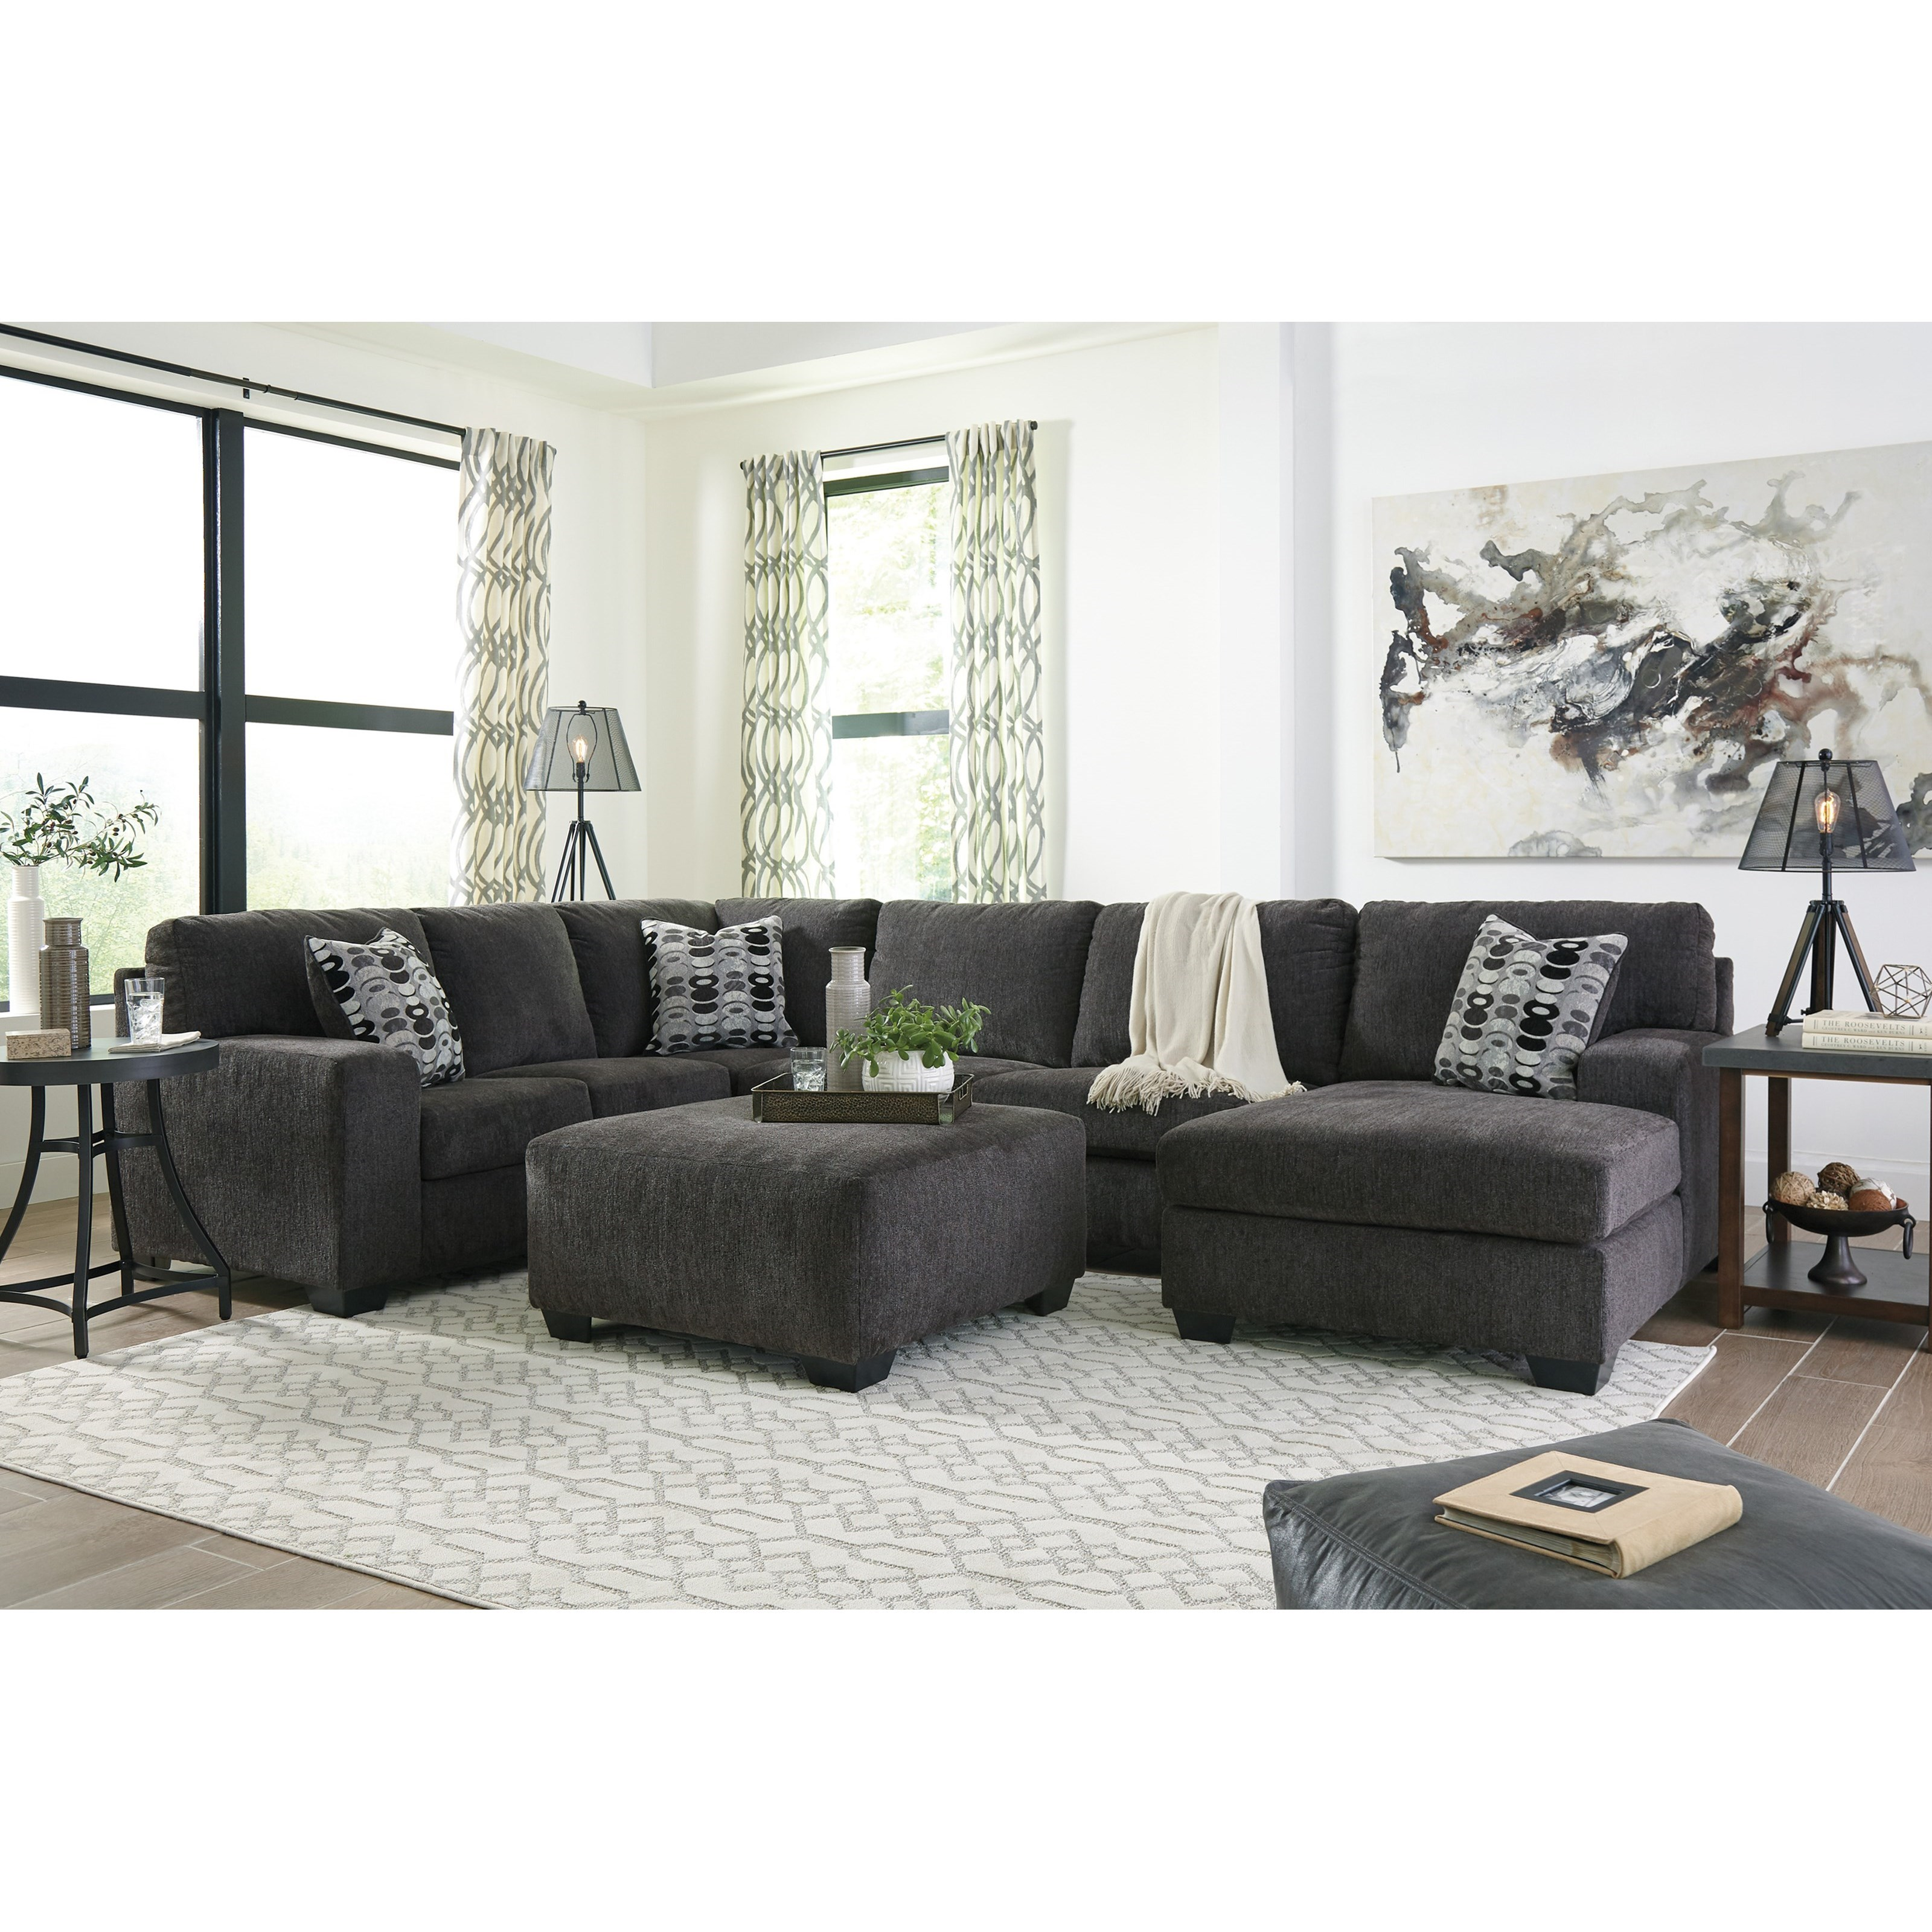 Ballinasloe Stationary Living Room Group by Signature Design by Ashley at Sparks HomeStore